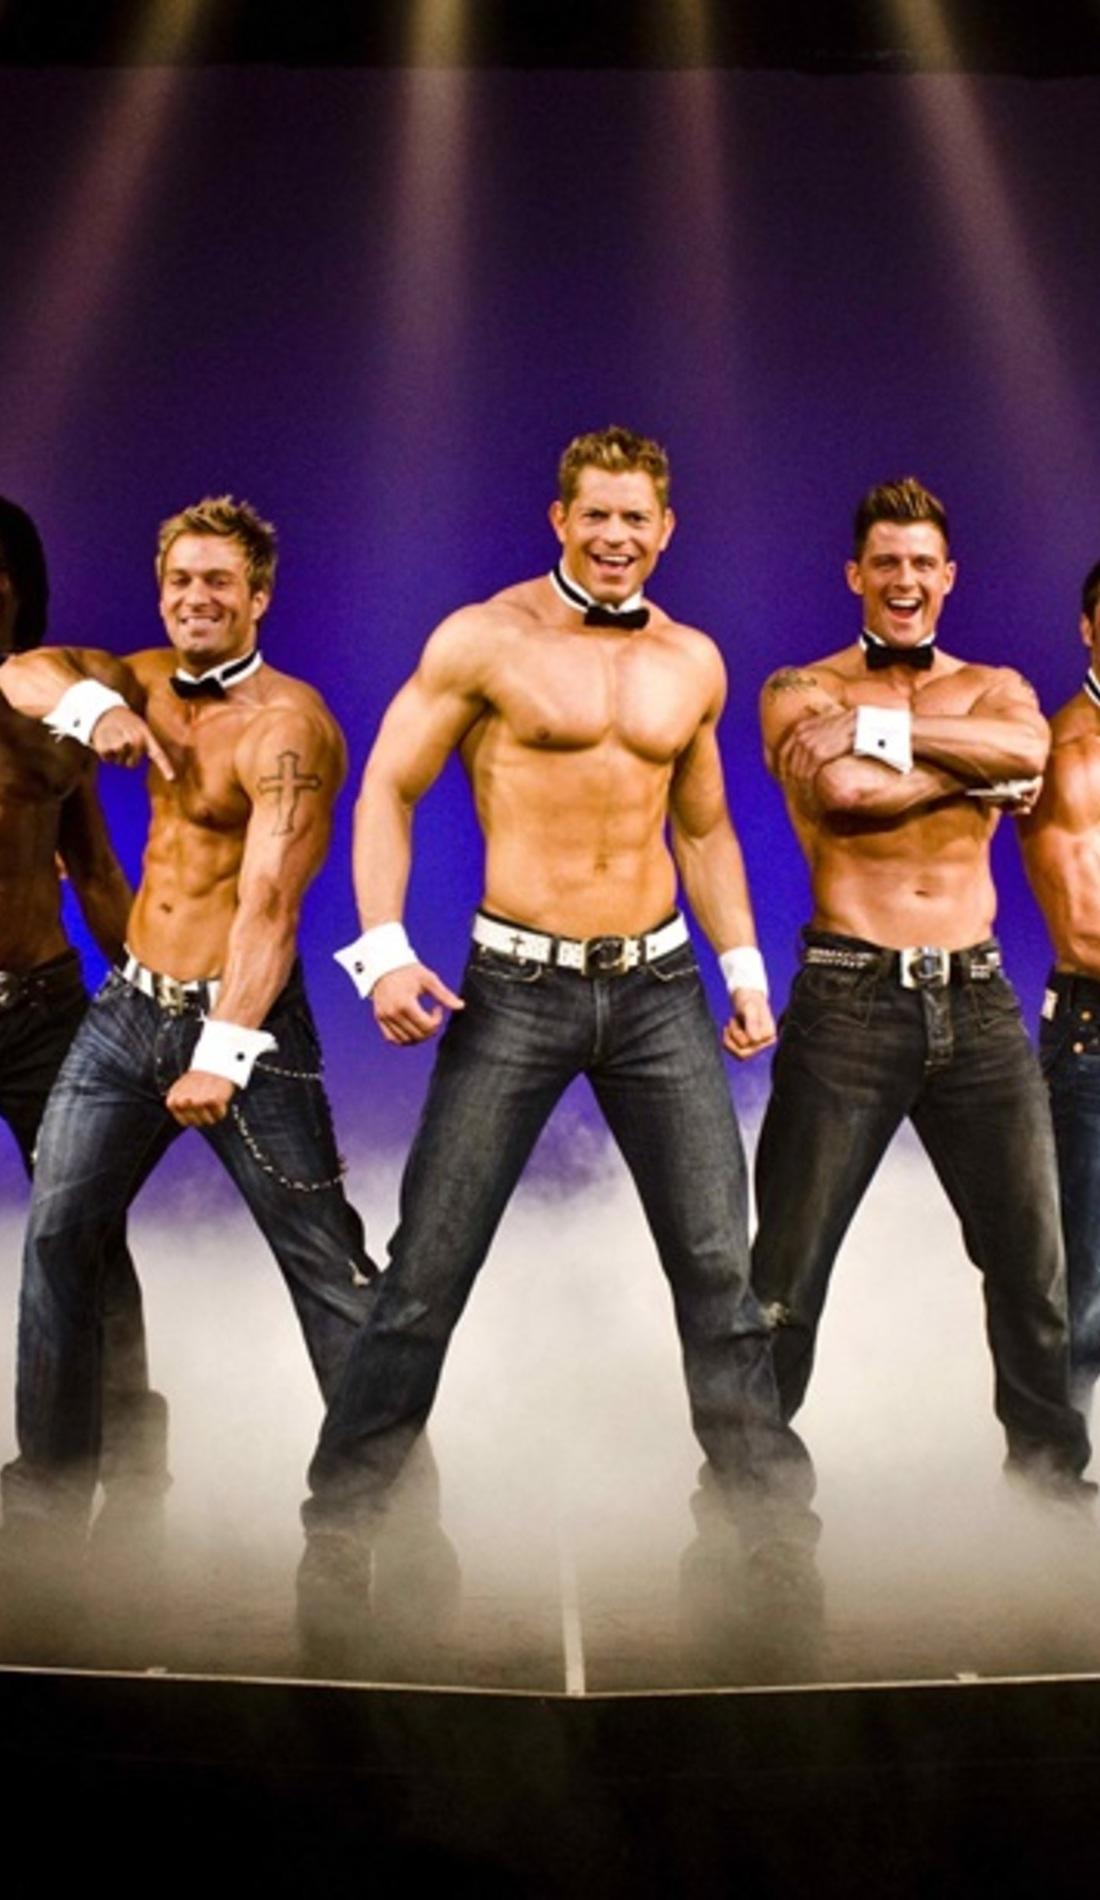 A Chippendales live event